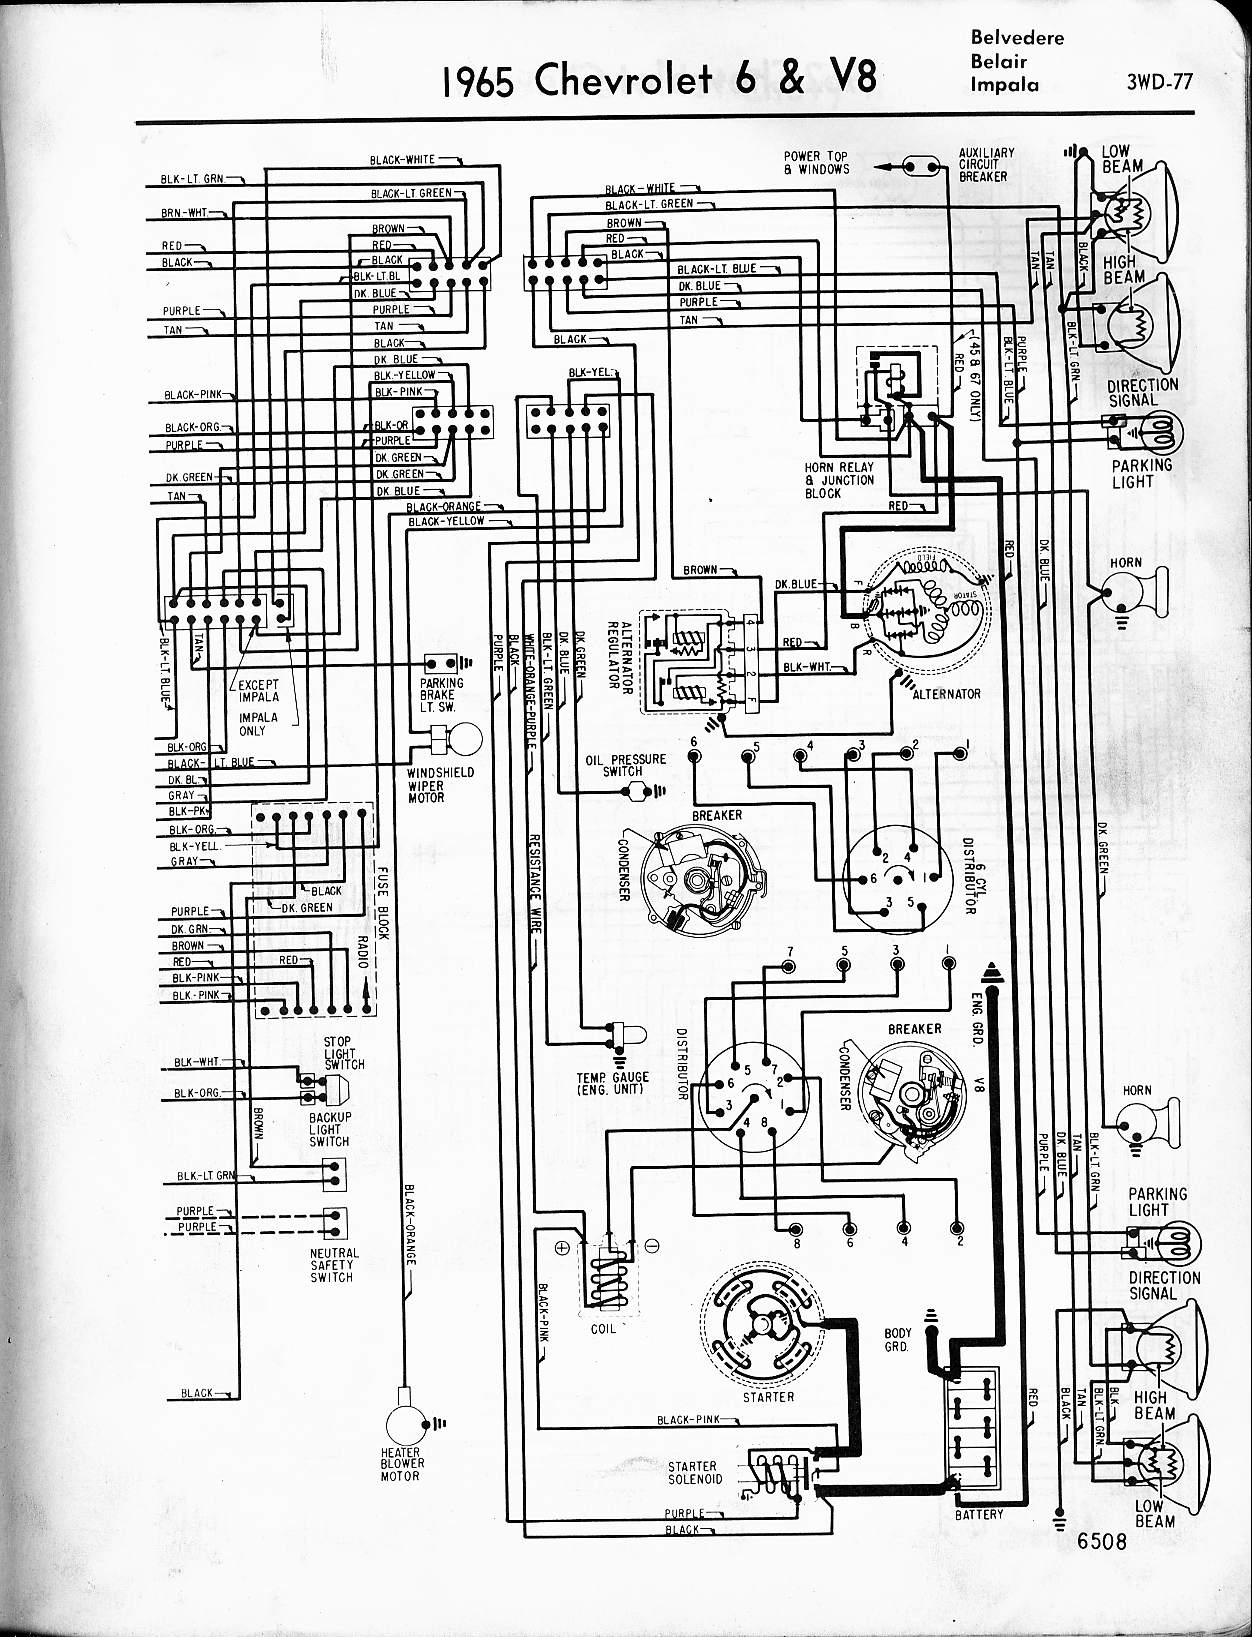 MWireChev65_3WD 077 chevy diagrams 65 comet wiring diagram at soozxer.org